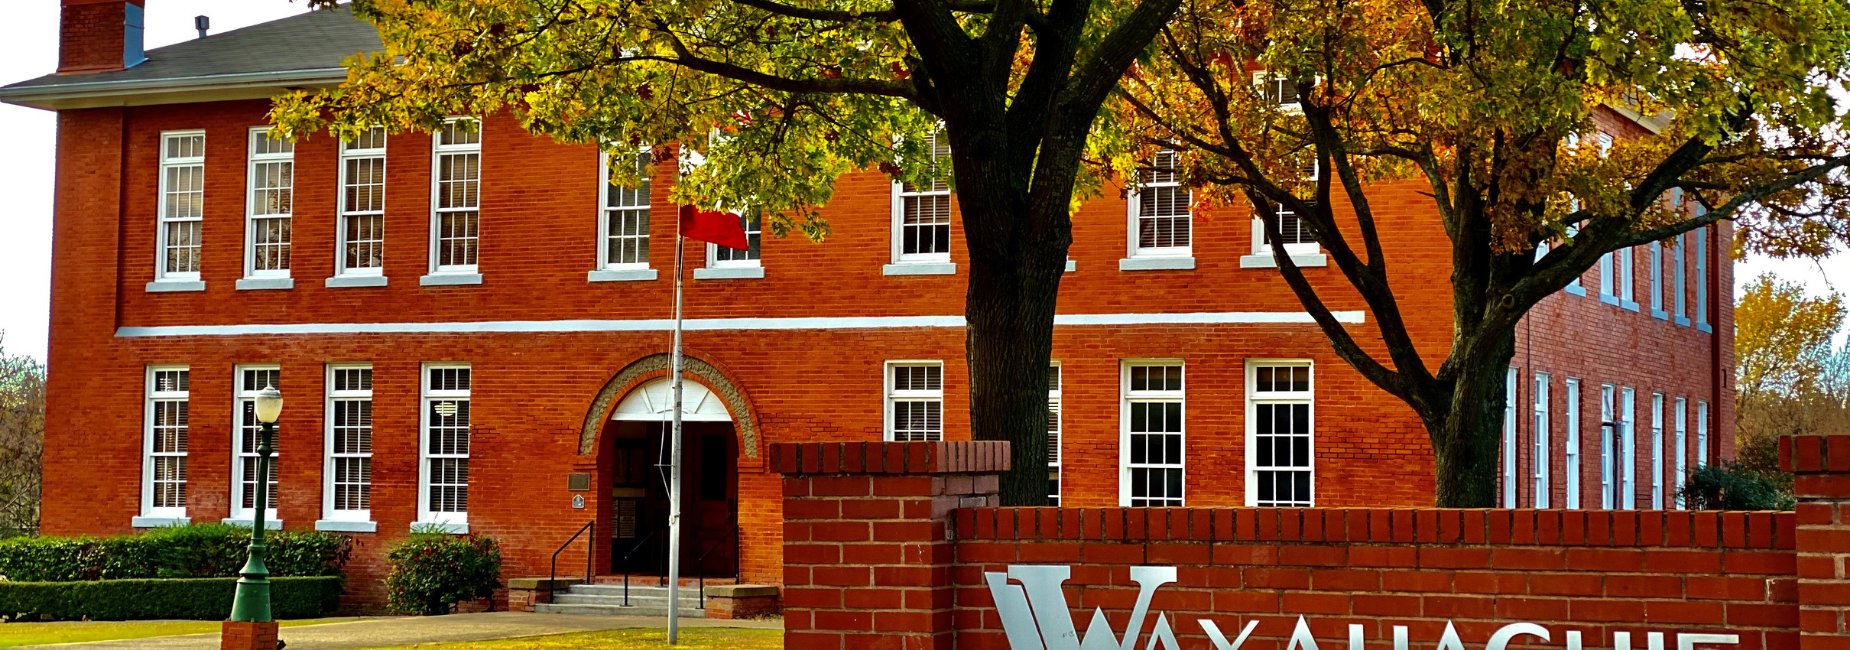 street view of the WISD administration building